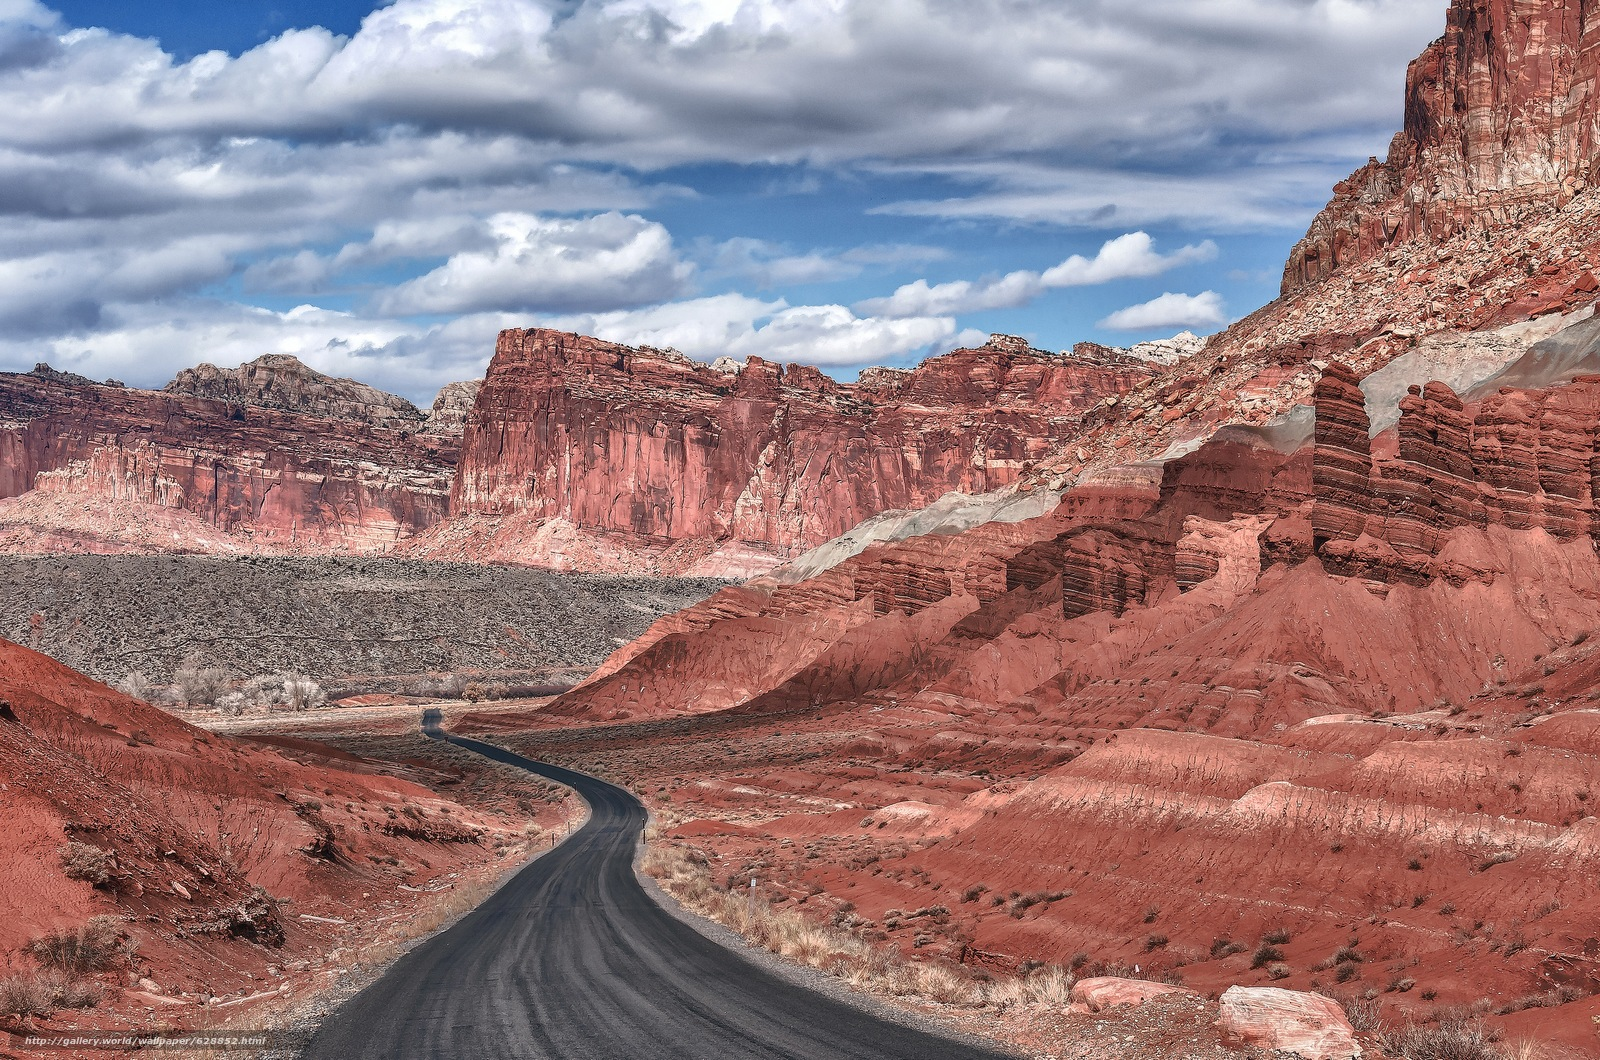 Mountains, landscape, road, Capitol Reef National Park